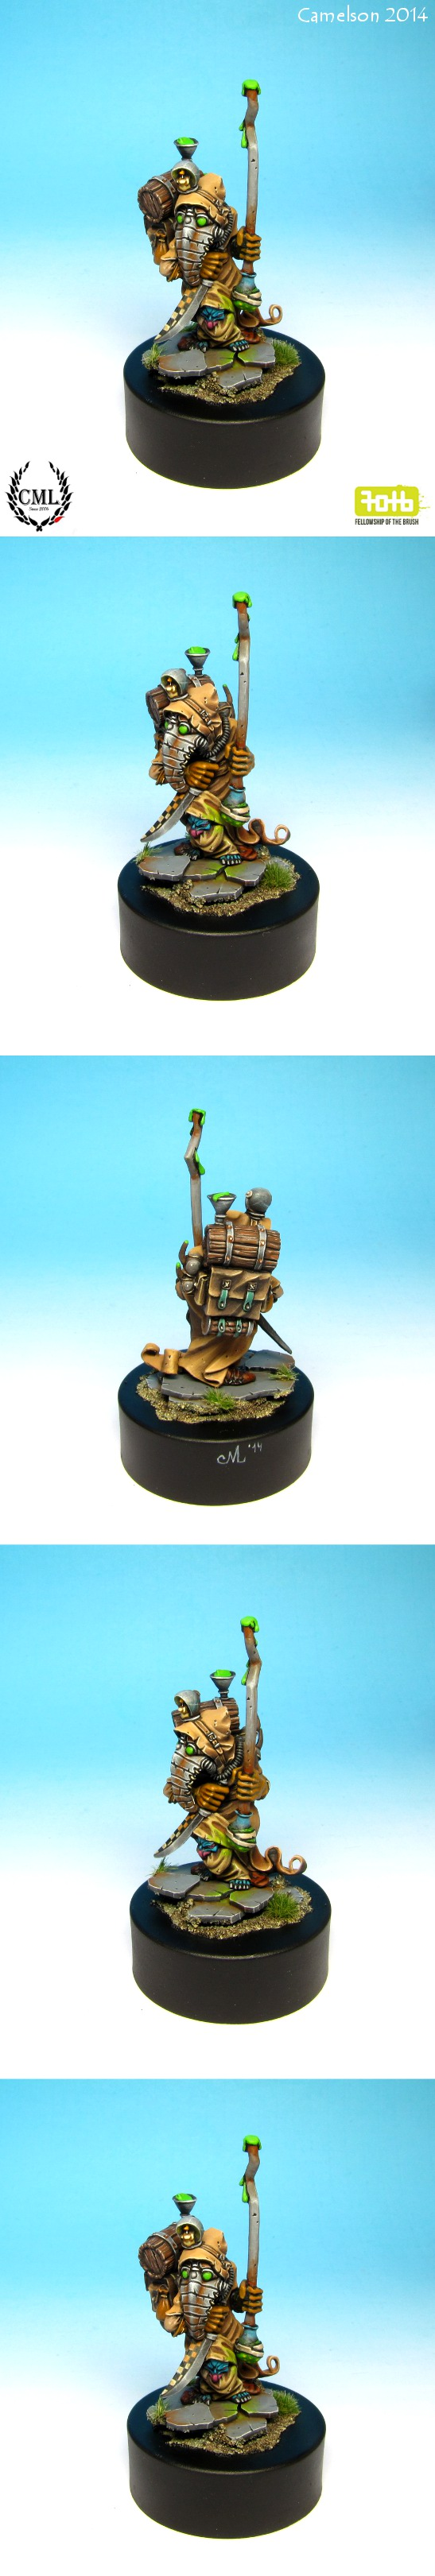 Rackham Confrontation Goblin Gas Blower